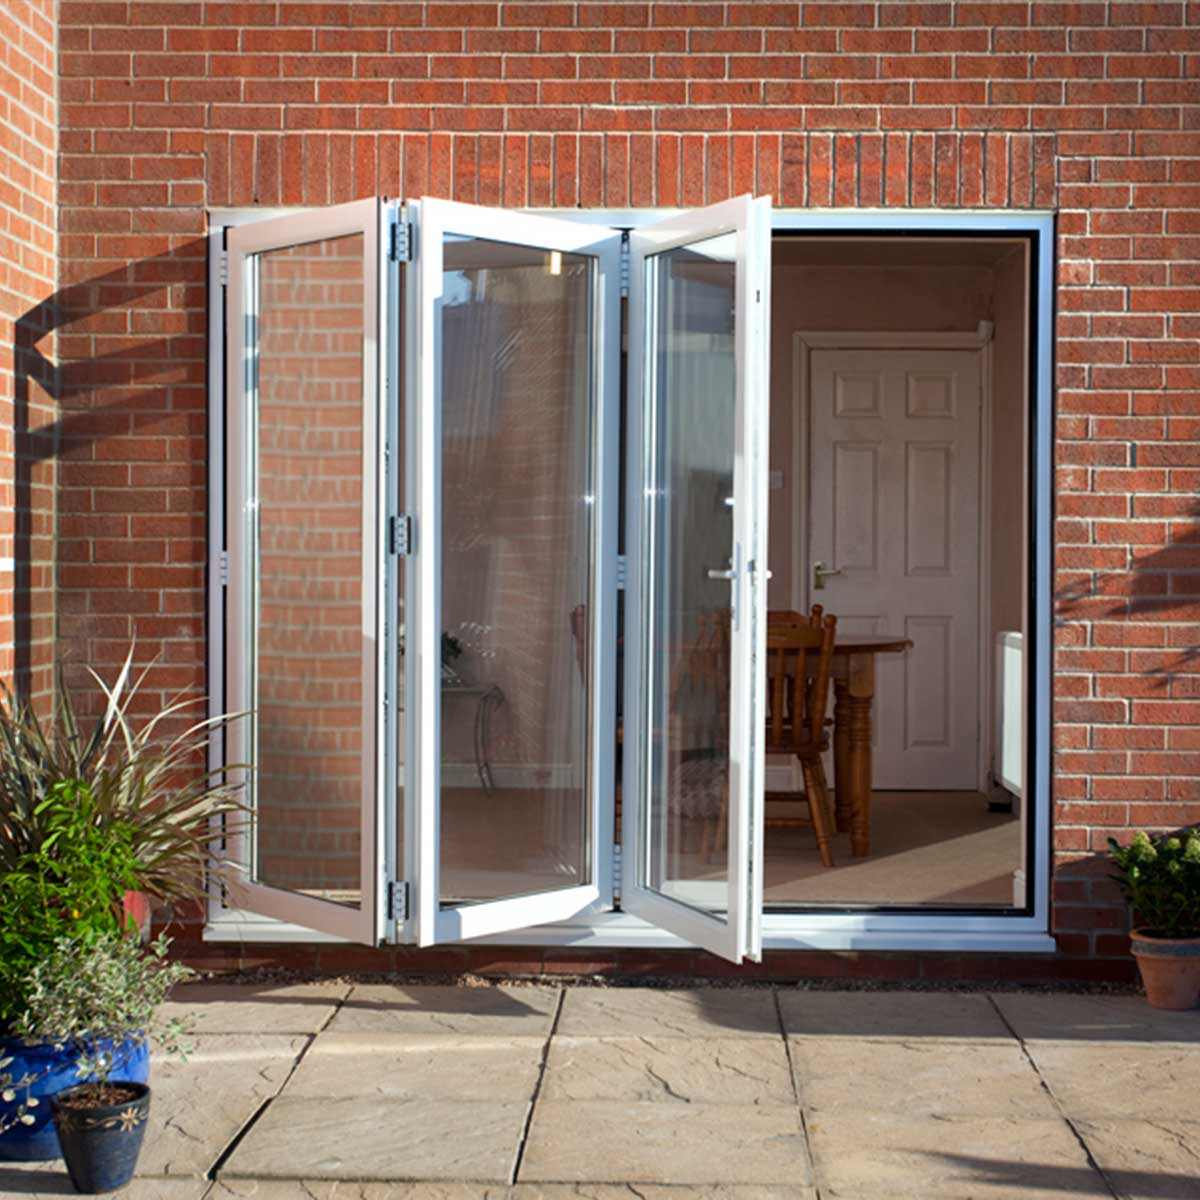 French doors for sale cairns photo album for French doors for sale